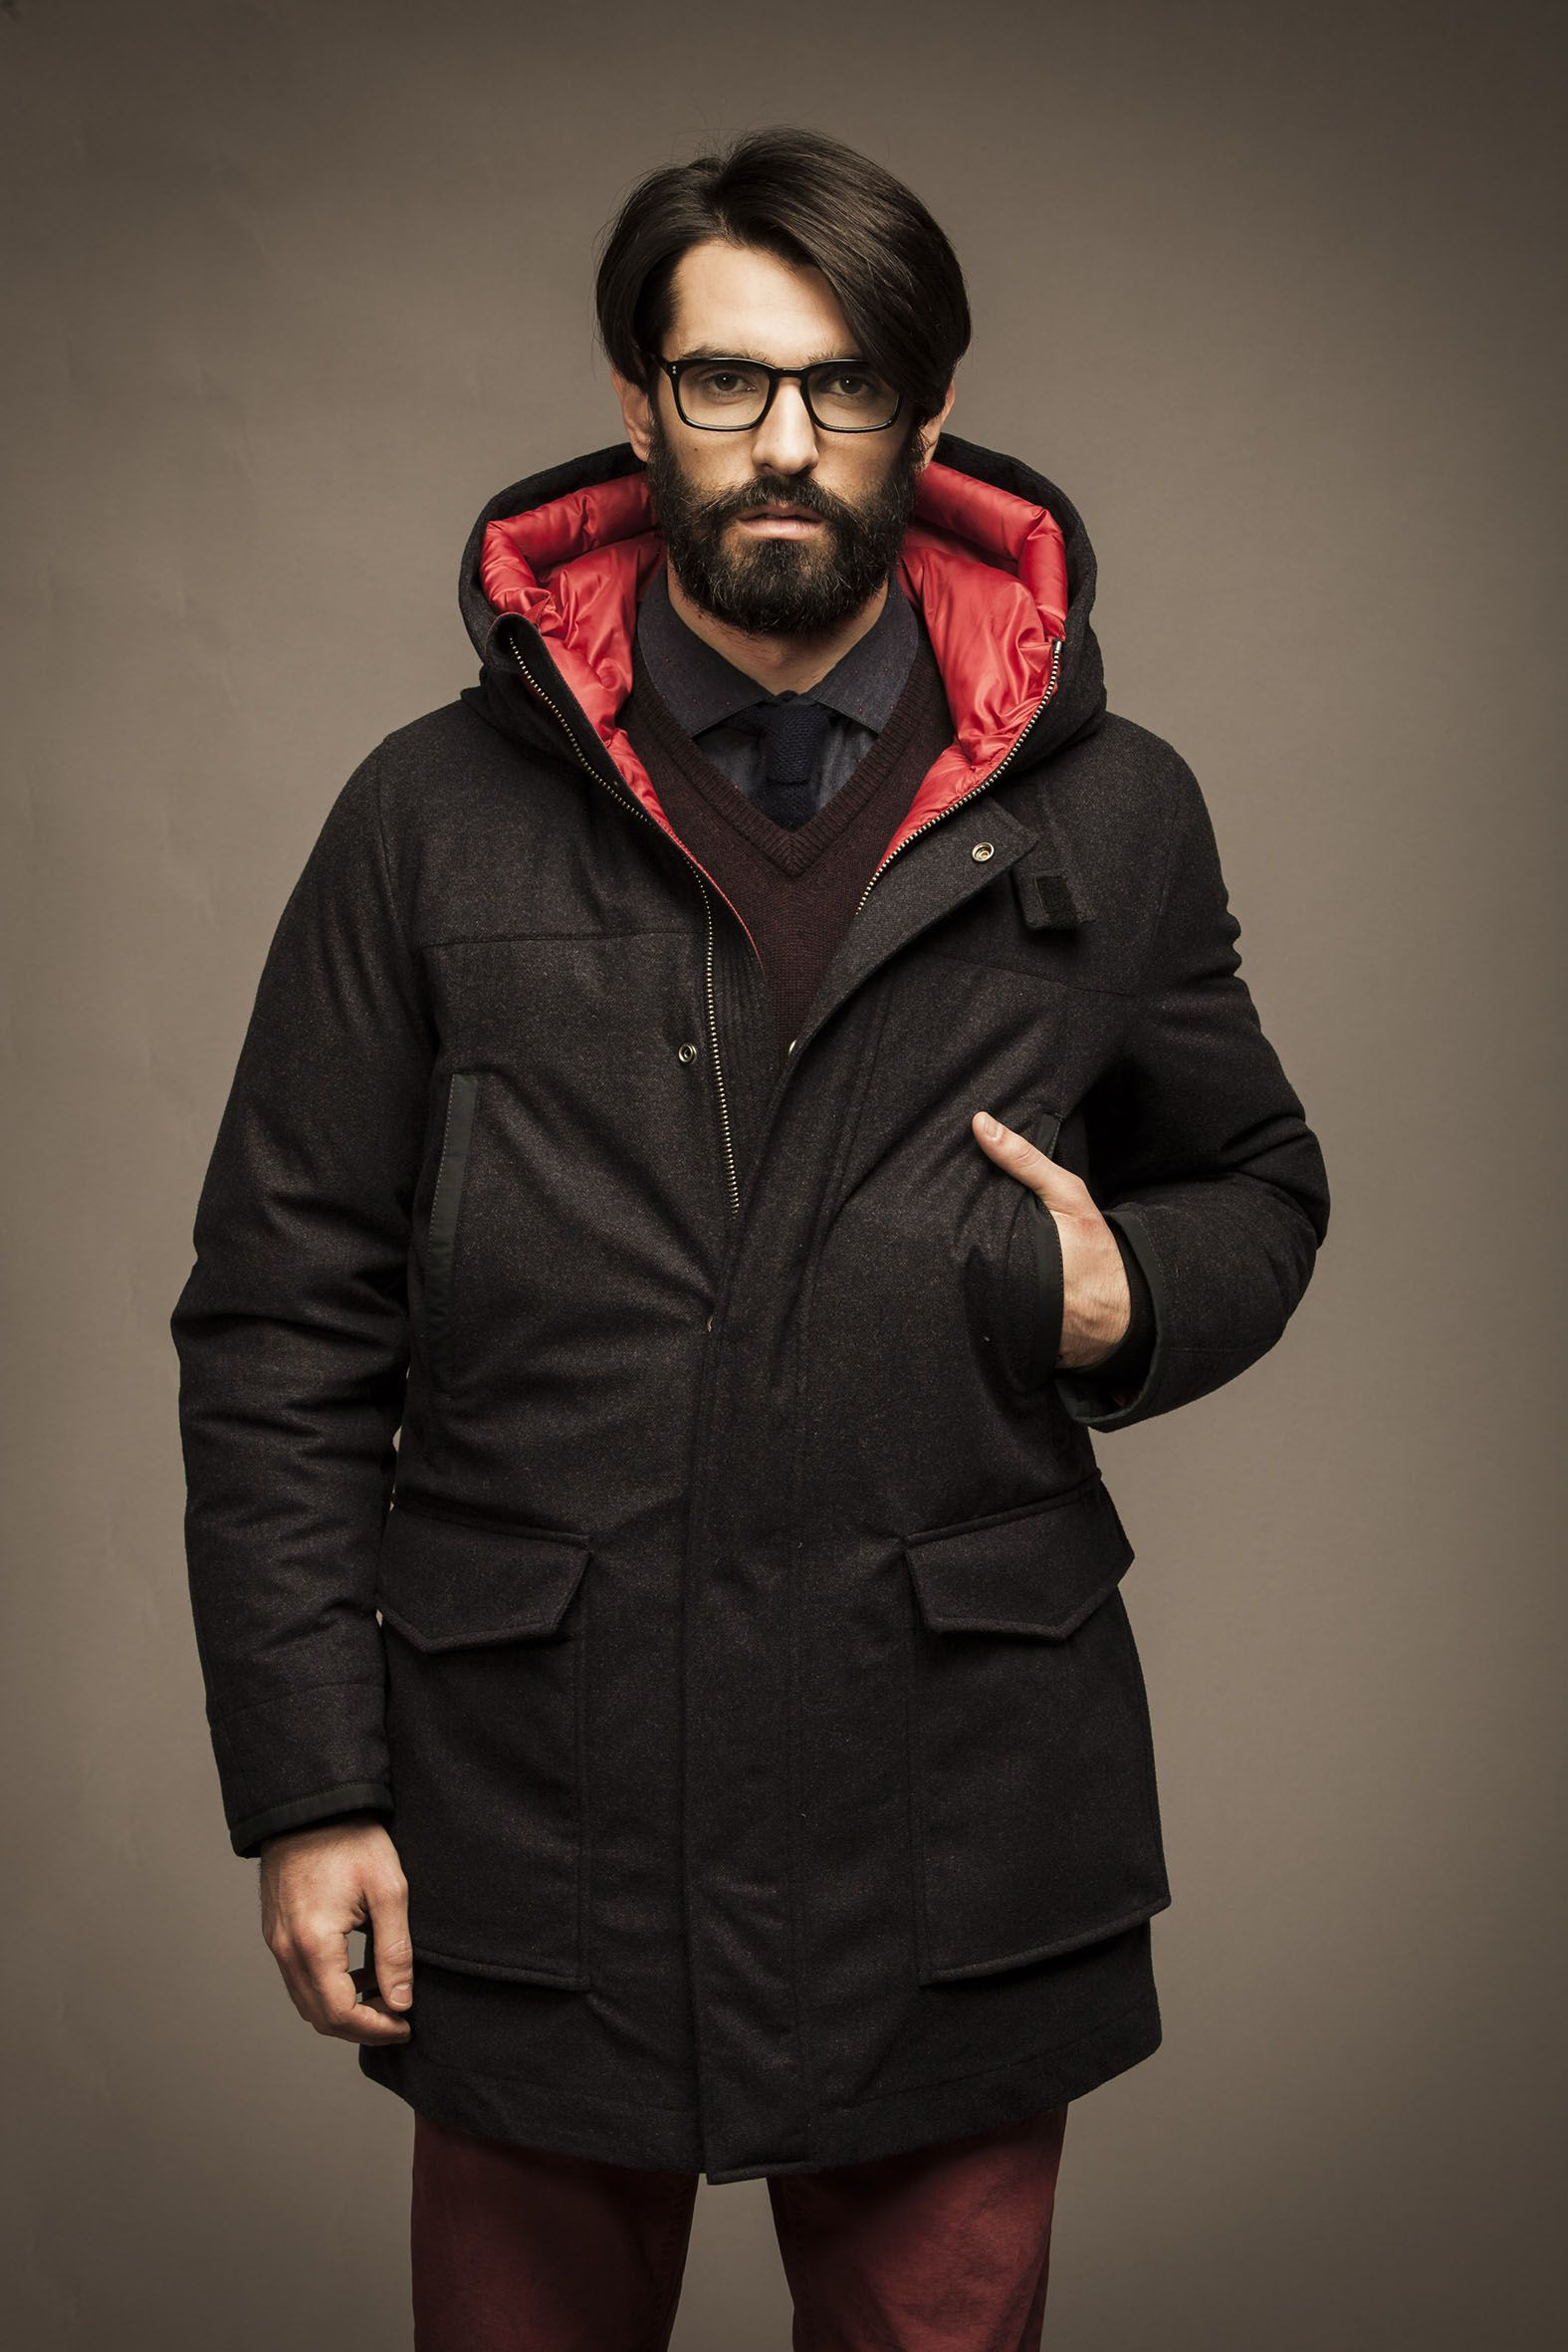 [preview] #Woolrich John Rich & Bros: lookbook #FW13 collection #man #fashion #style